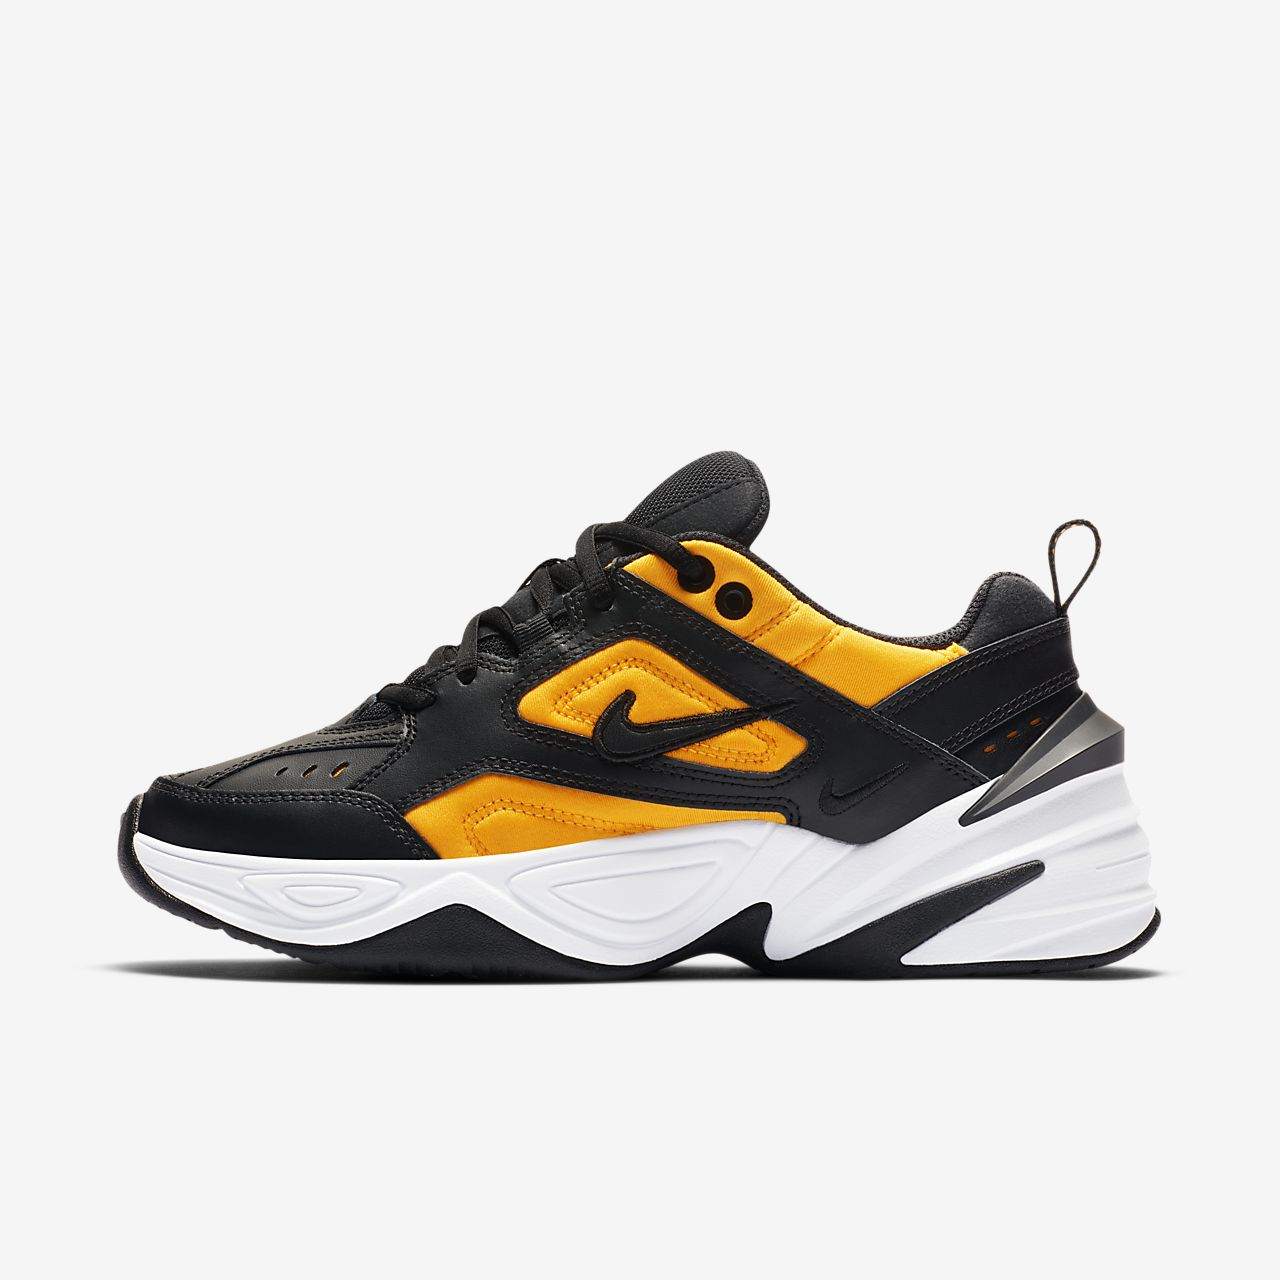 pretty nice 728d7 40f87 Low Resolution Chaussure Nike M2K Tekno Chaussure Nike M2K Tekno